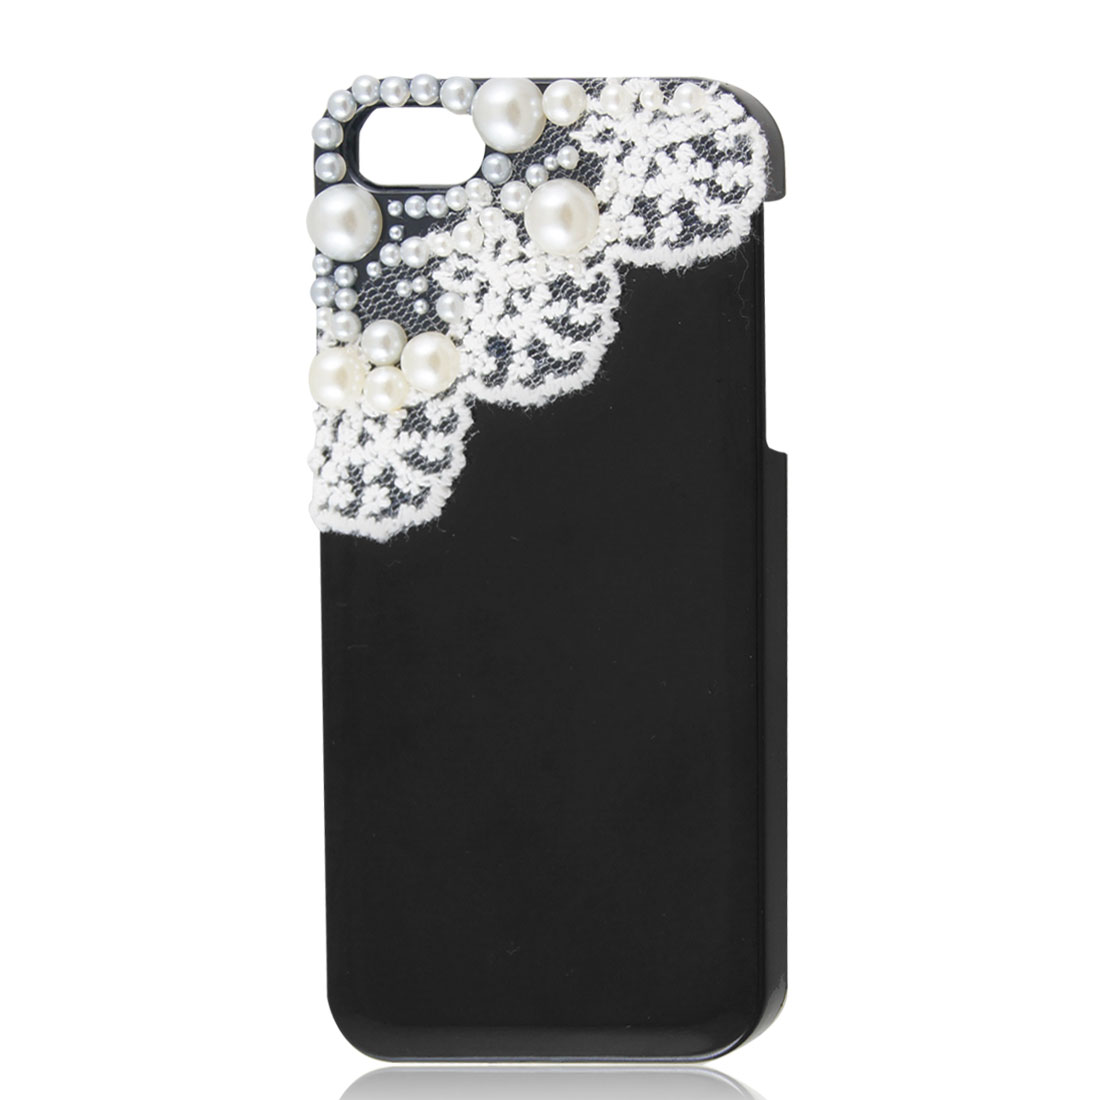 White Lace Beads Design Black Hard Back Case Cover for Apple iPhone 5 5G